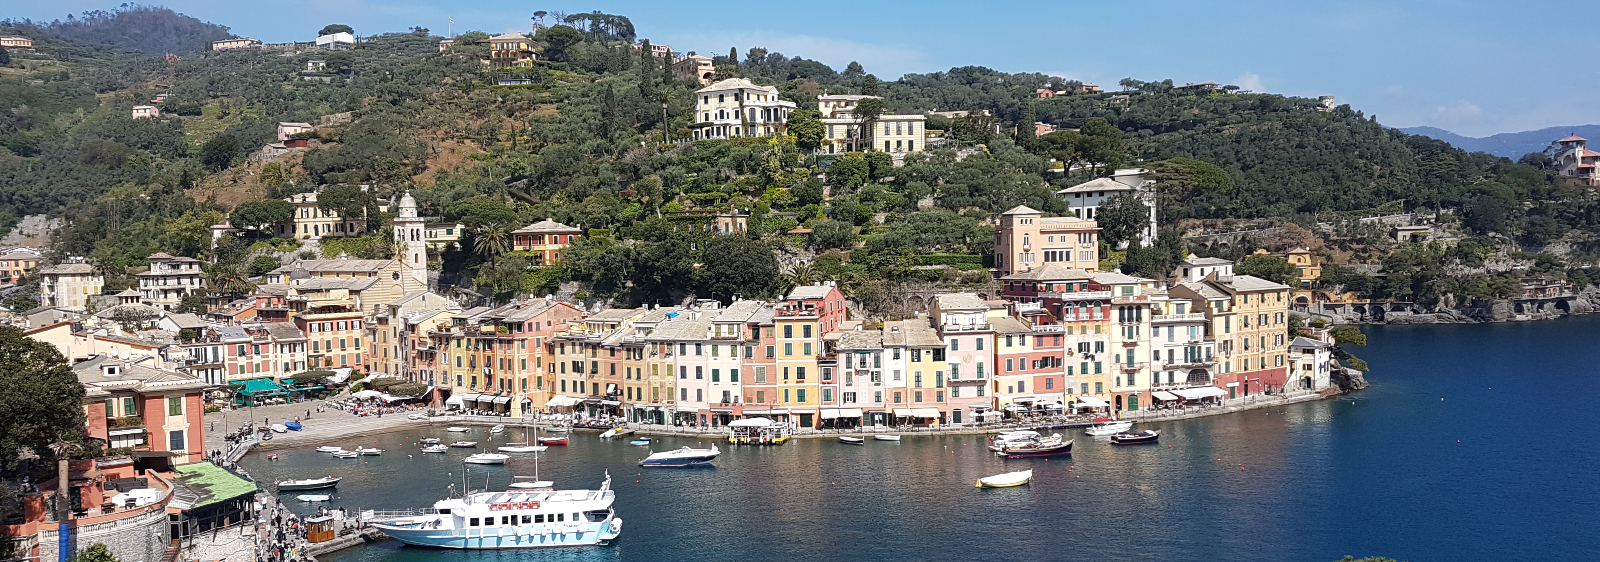 4 Things not to miss around Portofino